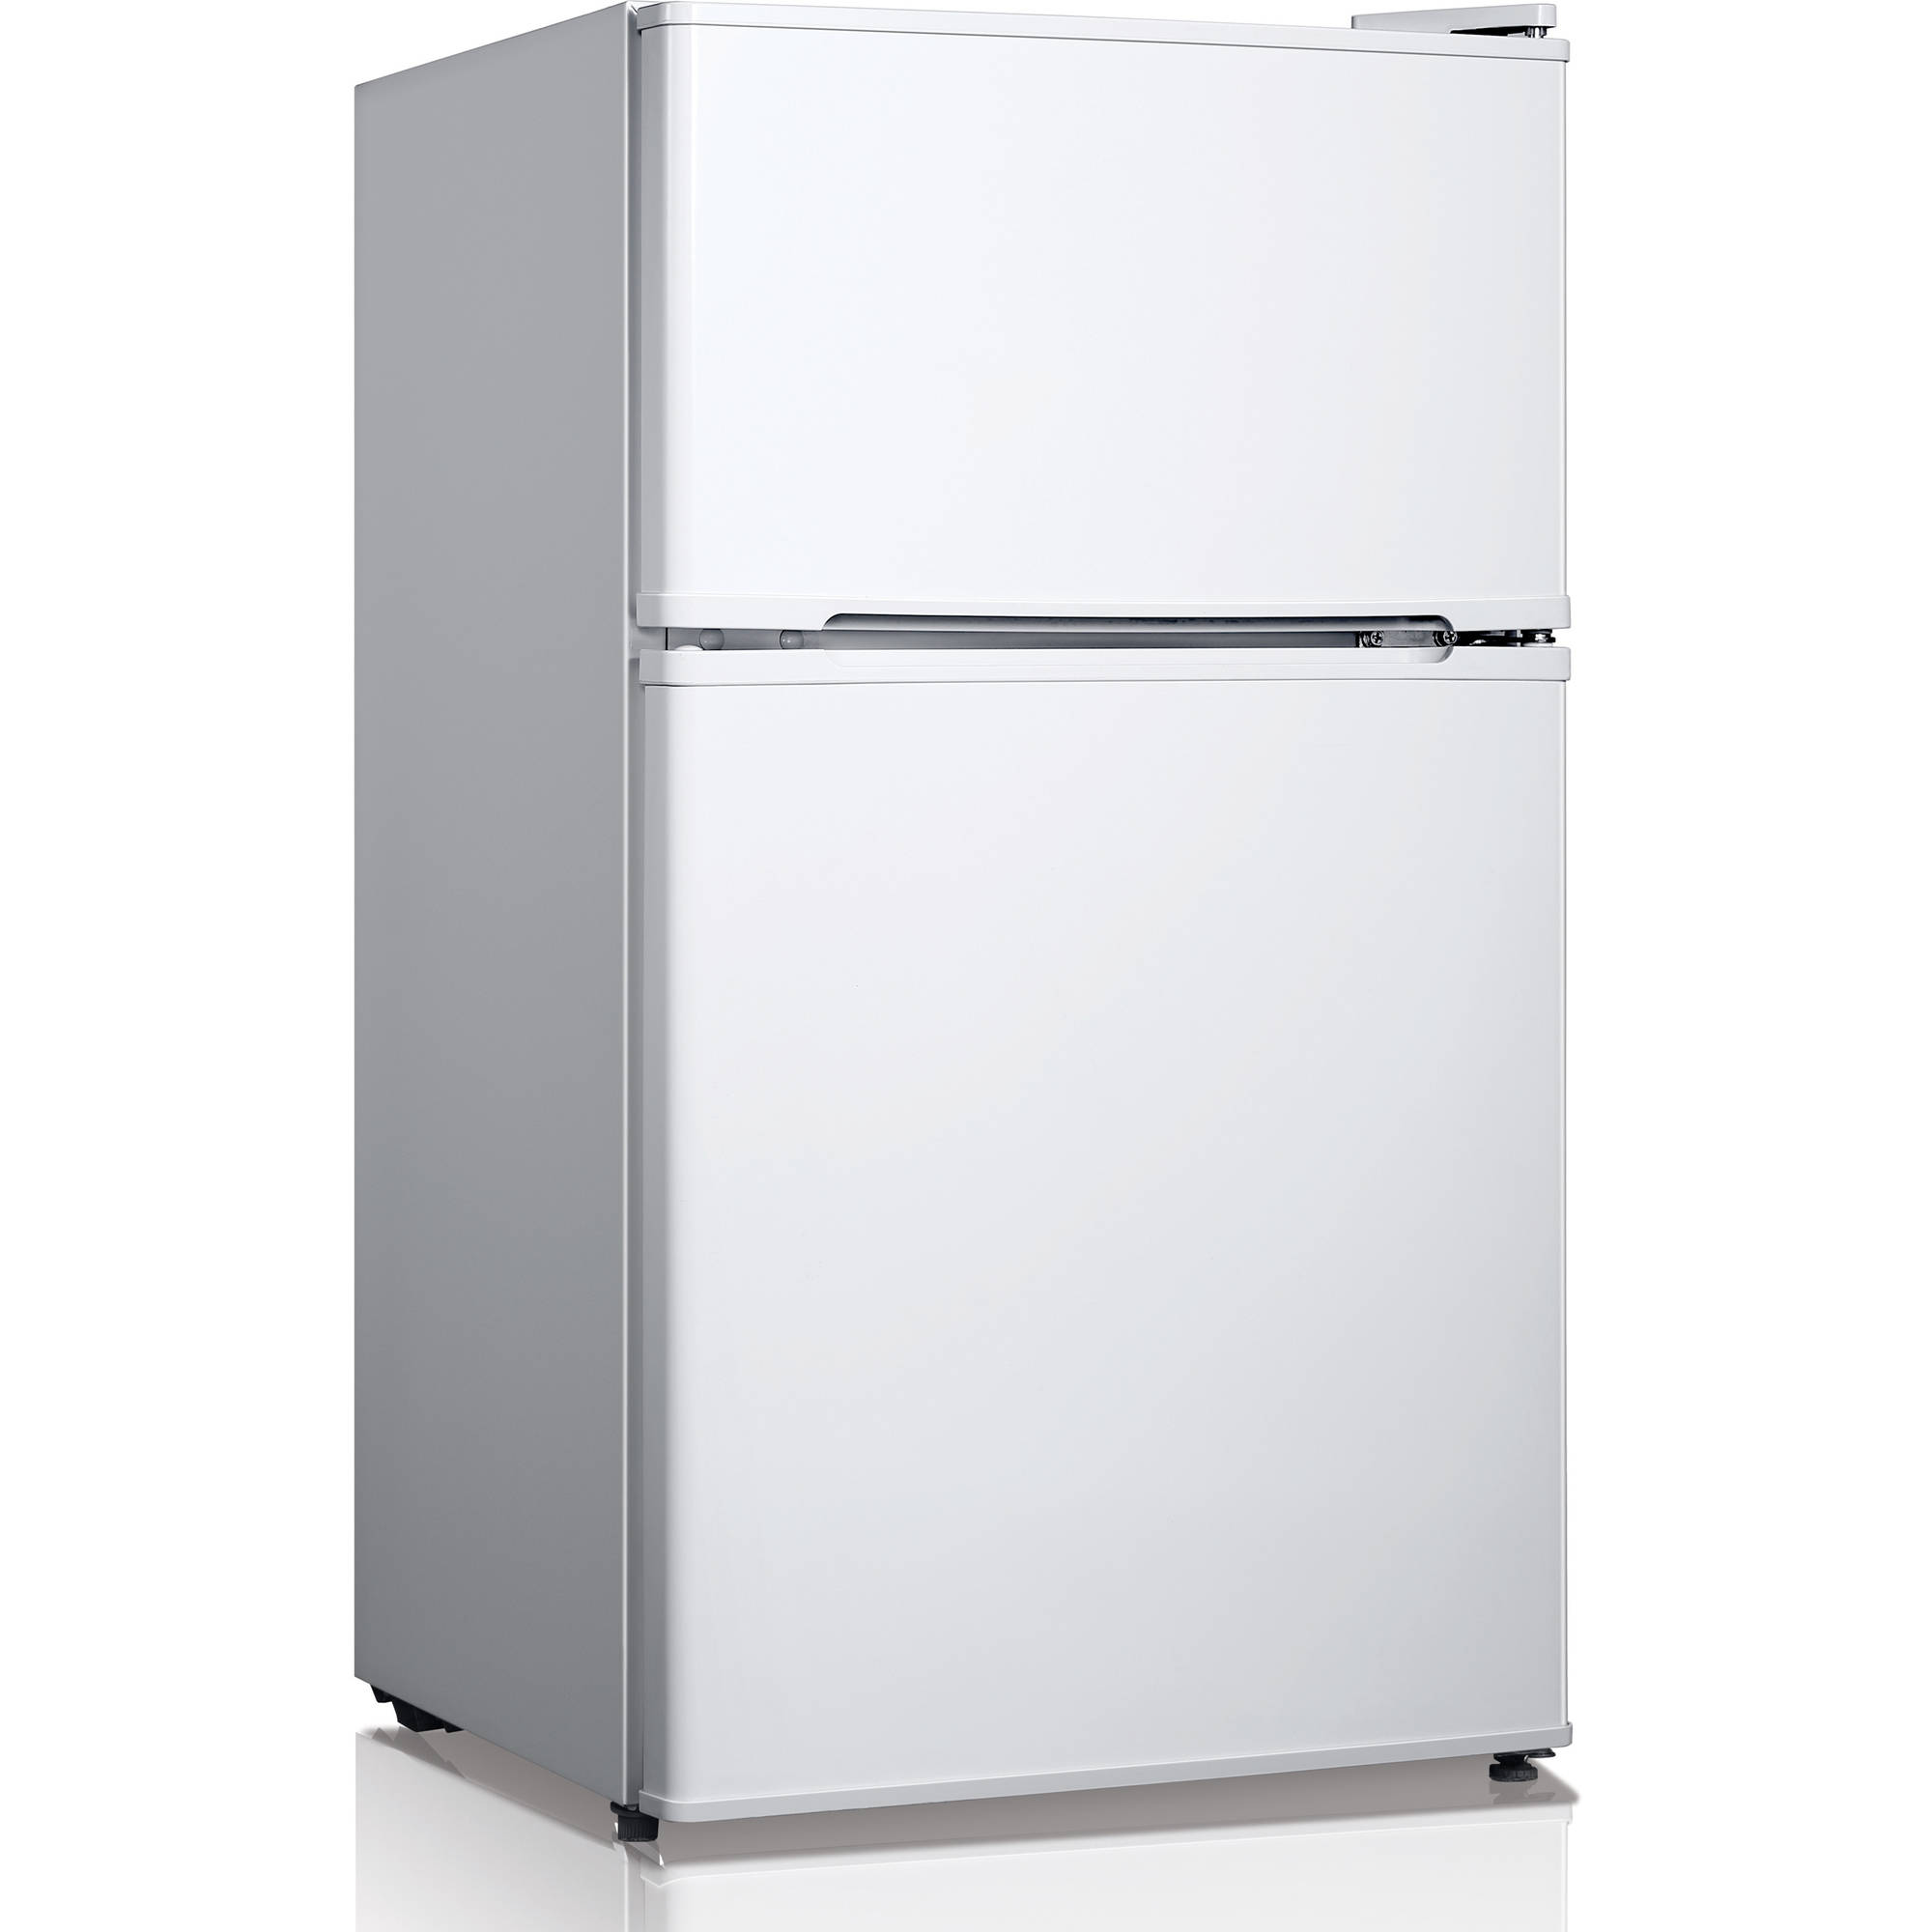 Midea 3.4 cubic foot, Compact Refrigerator with Double Doors, Multiple Colors